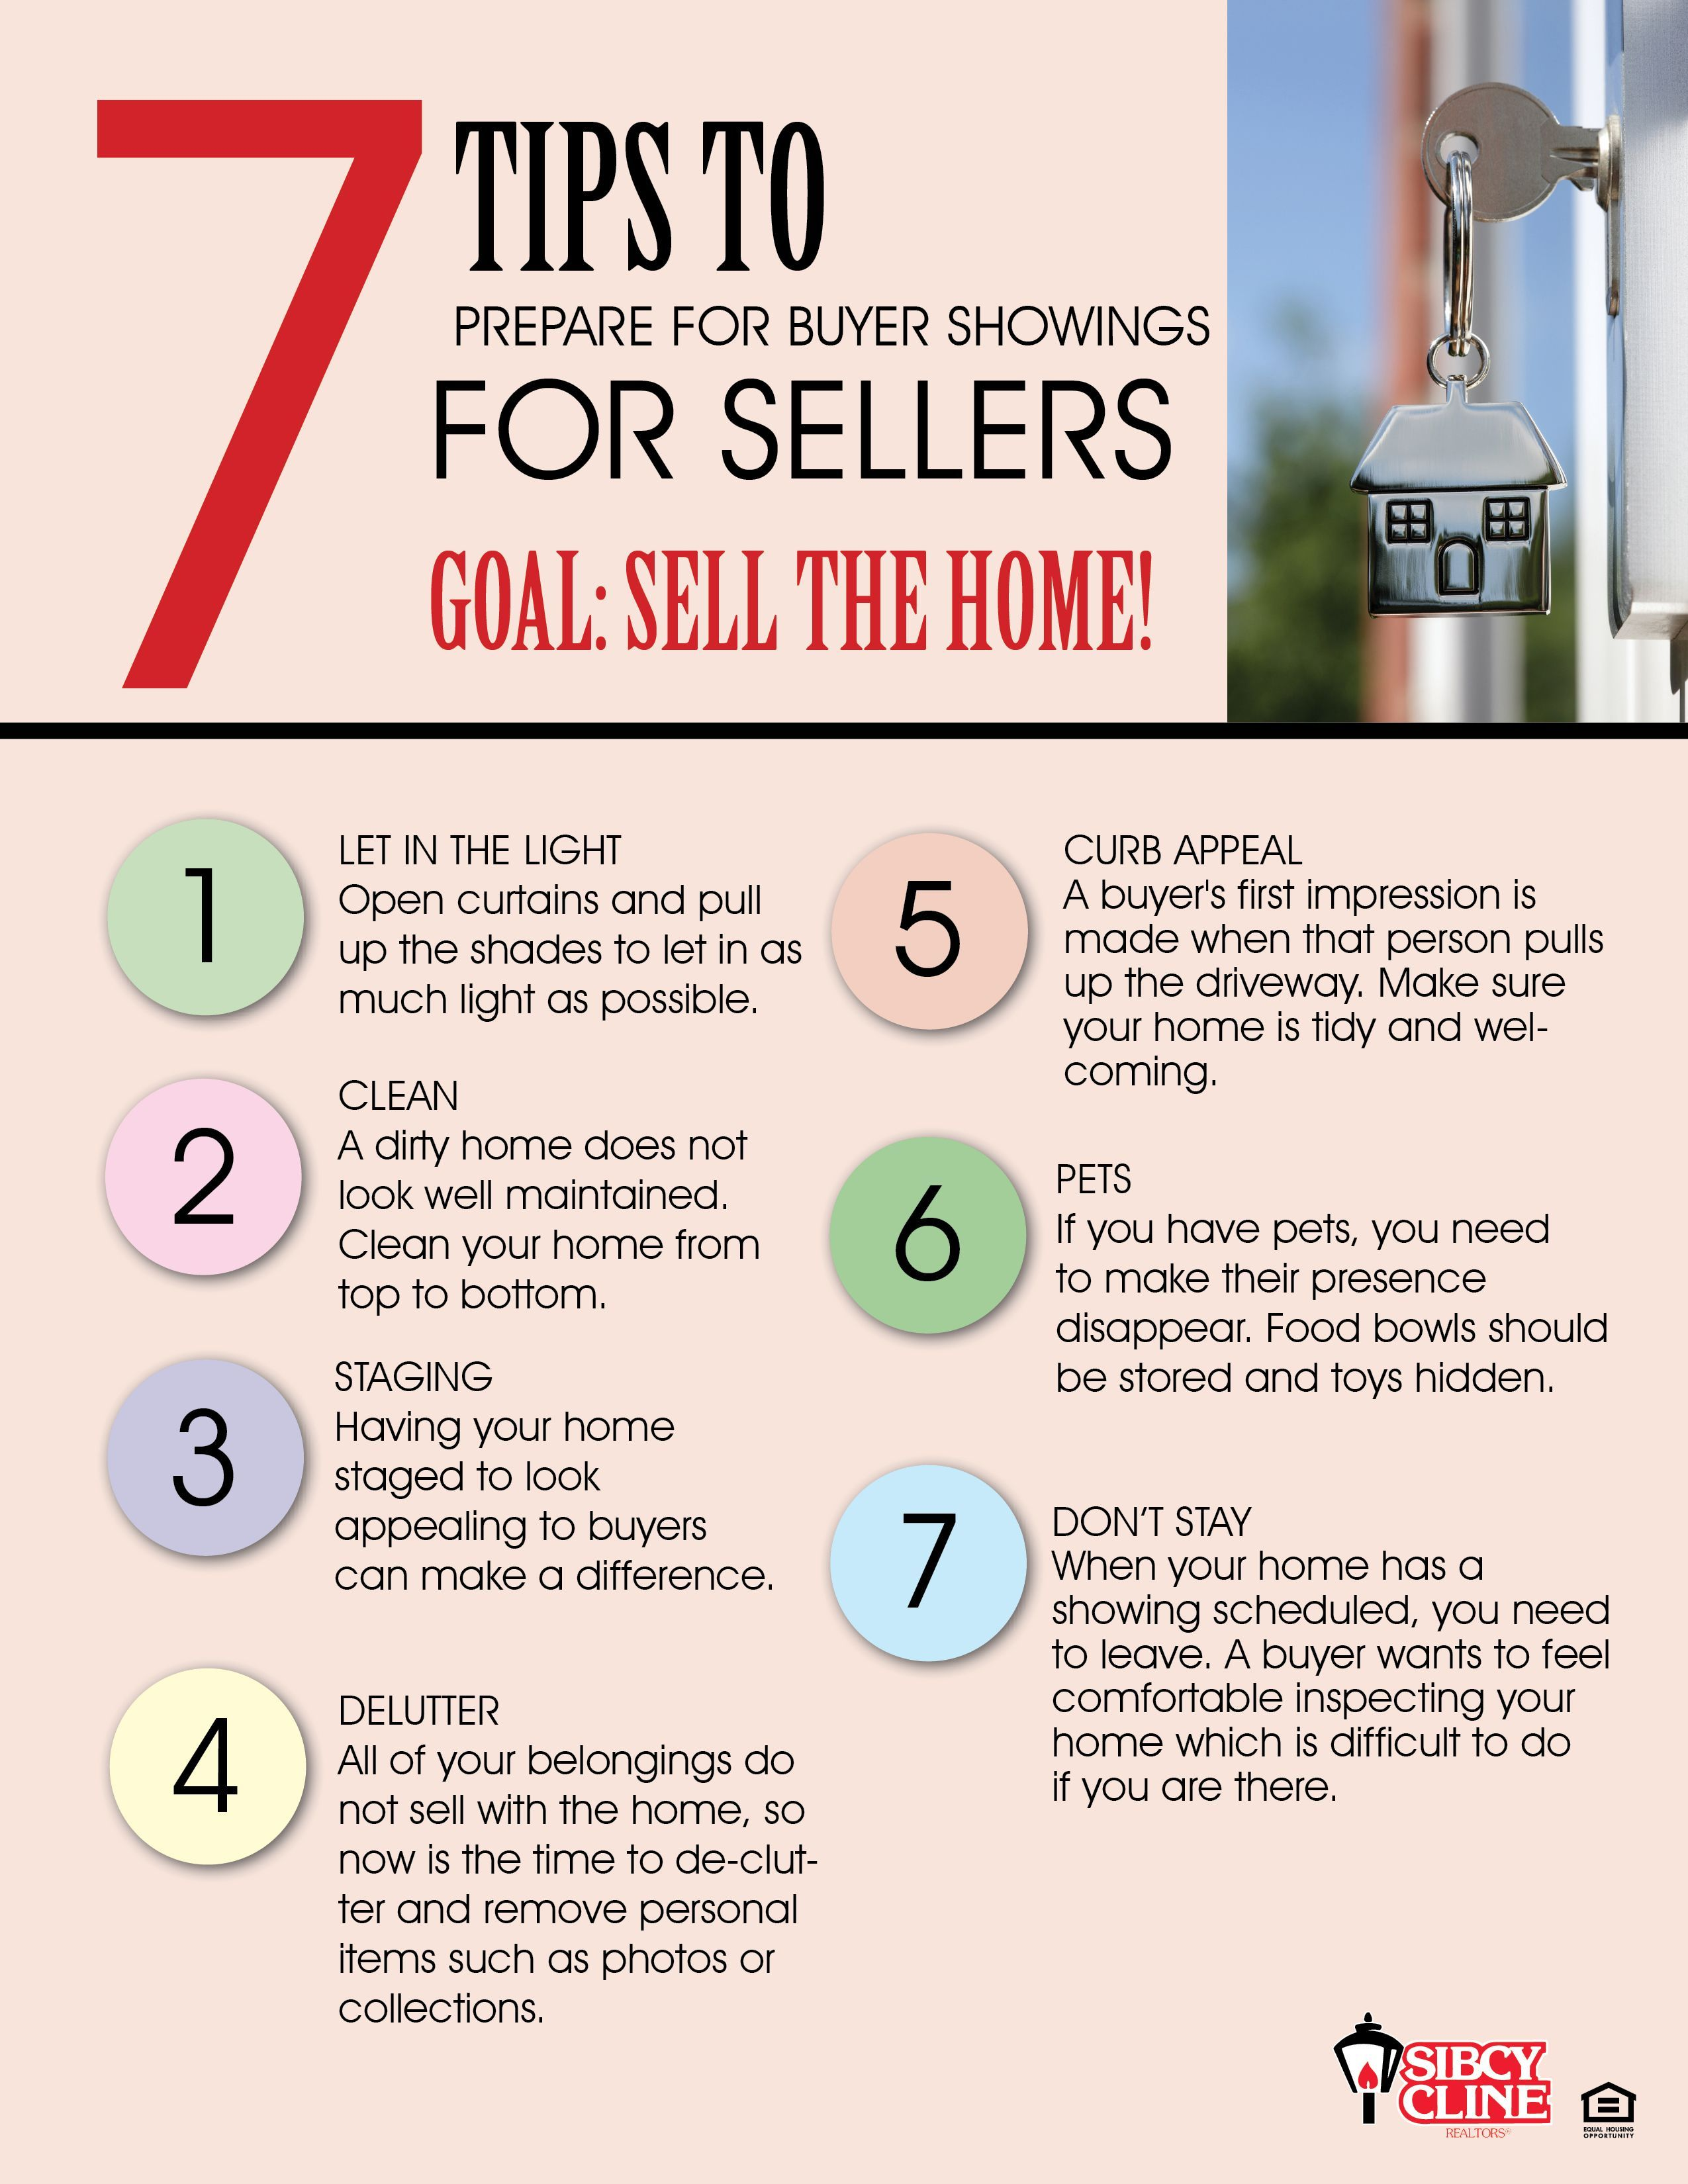 Home Selling Tips on home business tips, home inspection tips, home packing tips, home security tips, home design tips,